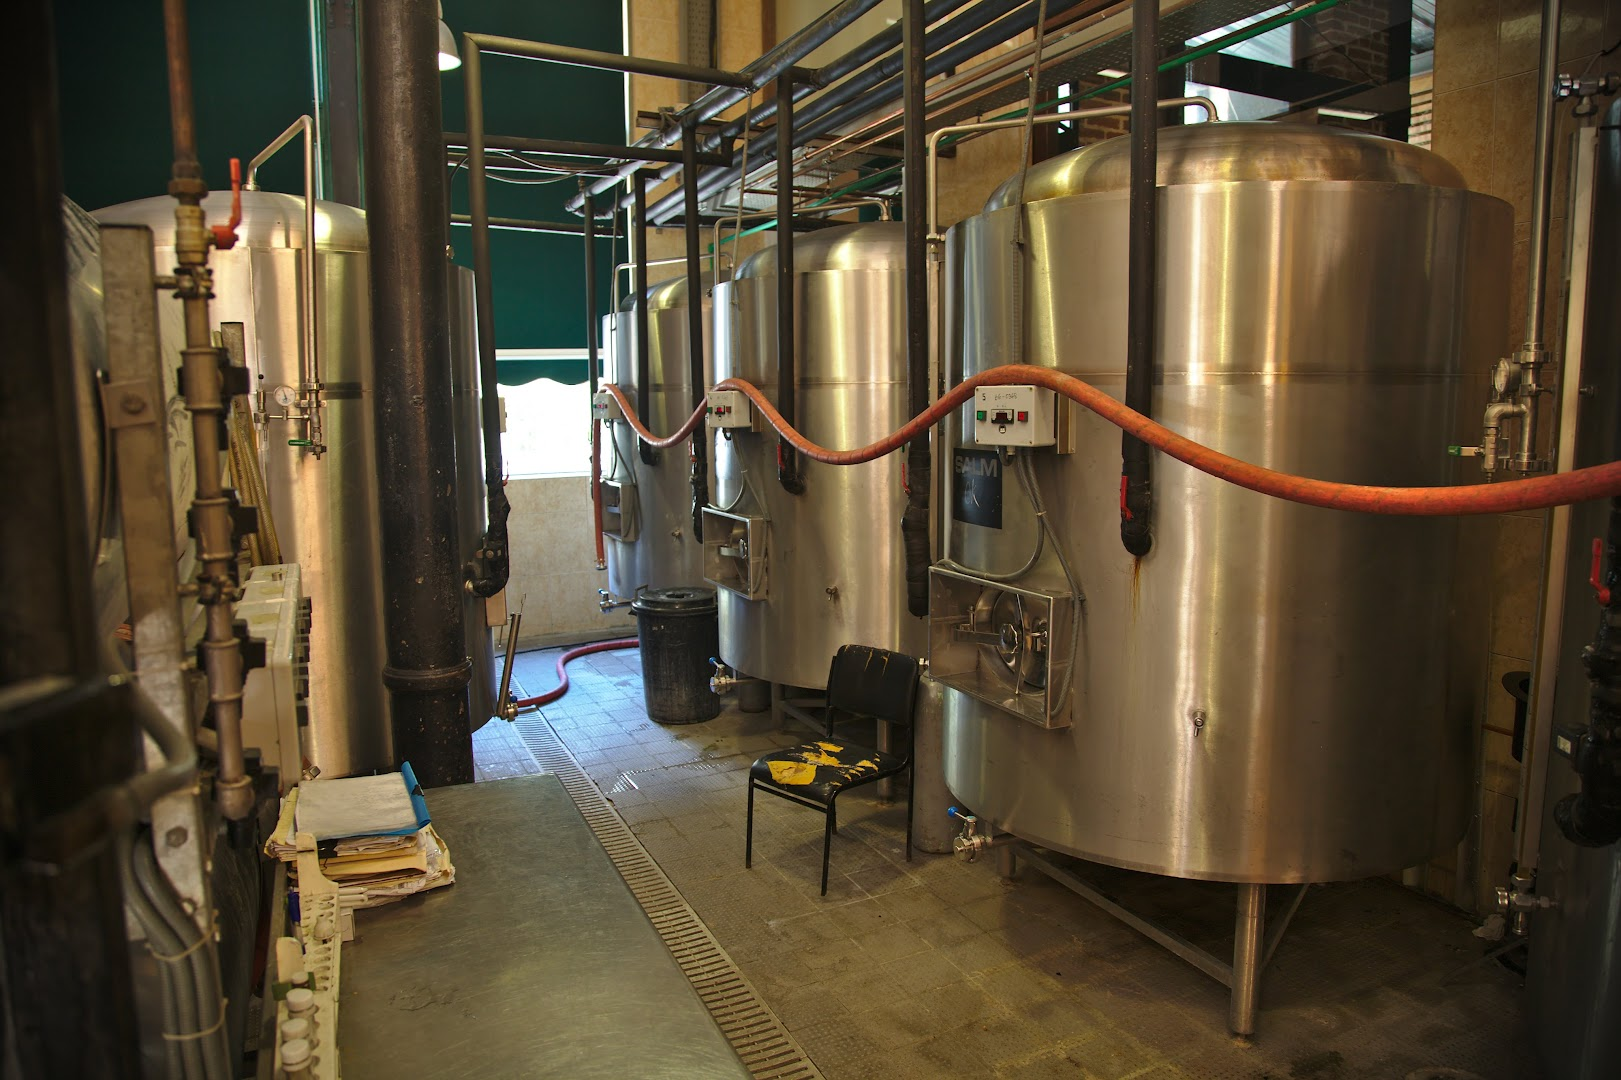 Local brewery tanks